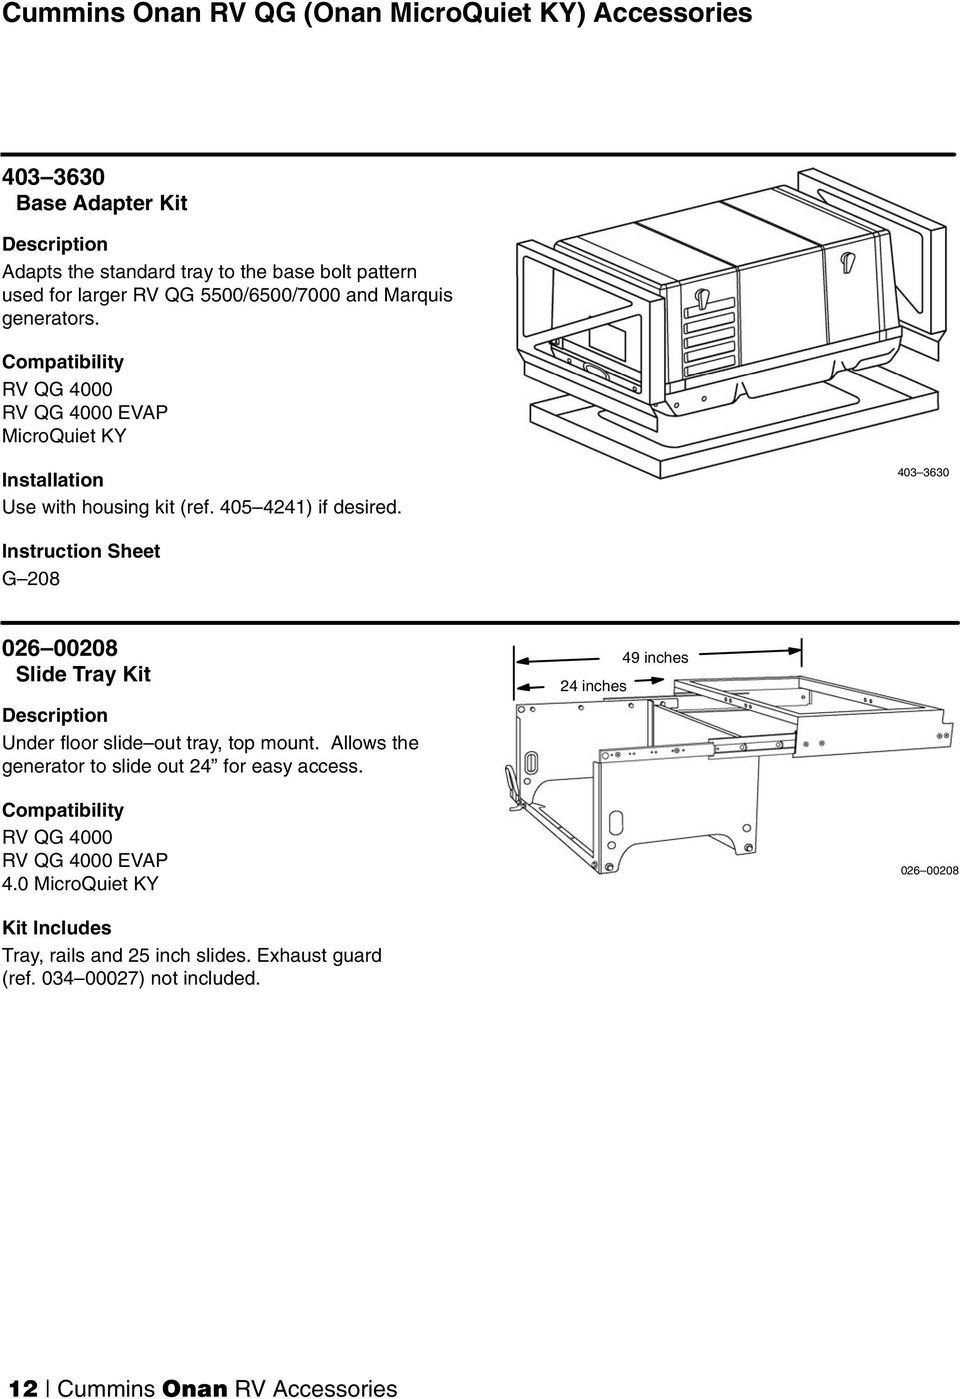 medium resolution of 403 3630 instruction sheet g 208 026 00208 slide tray kit under floor slide out tray